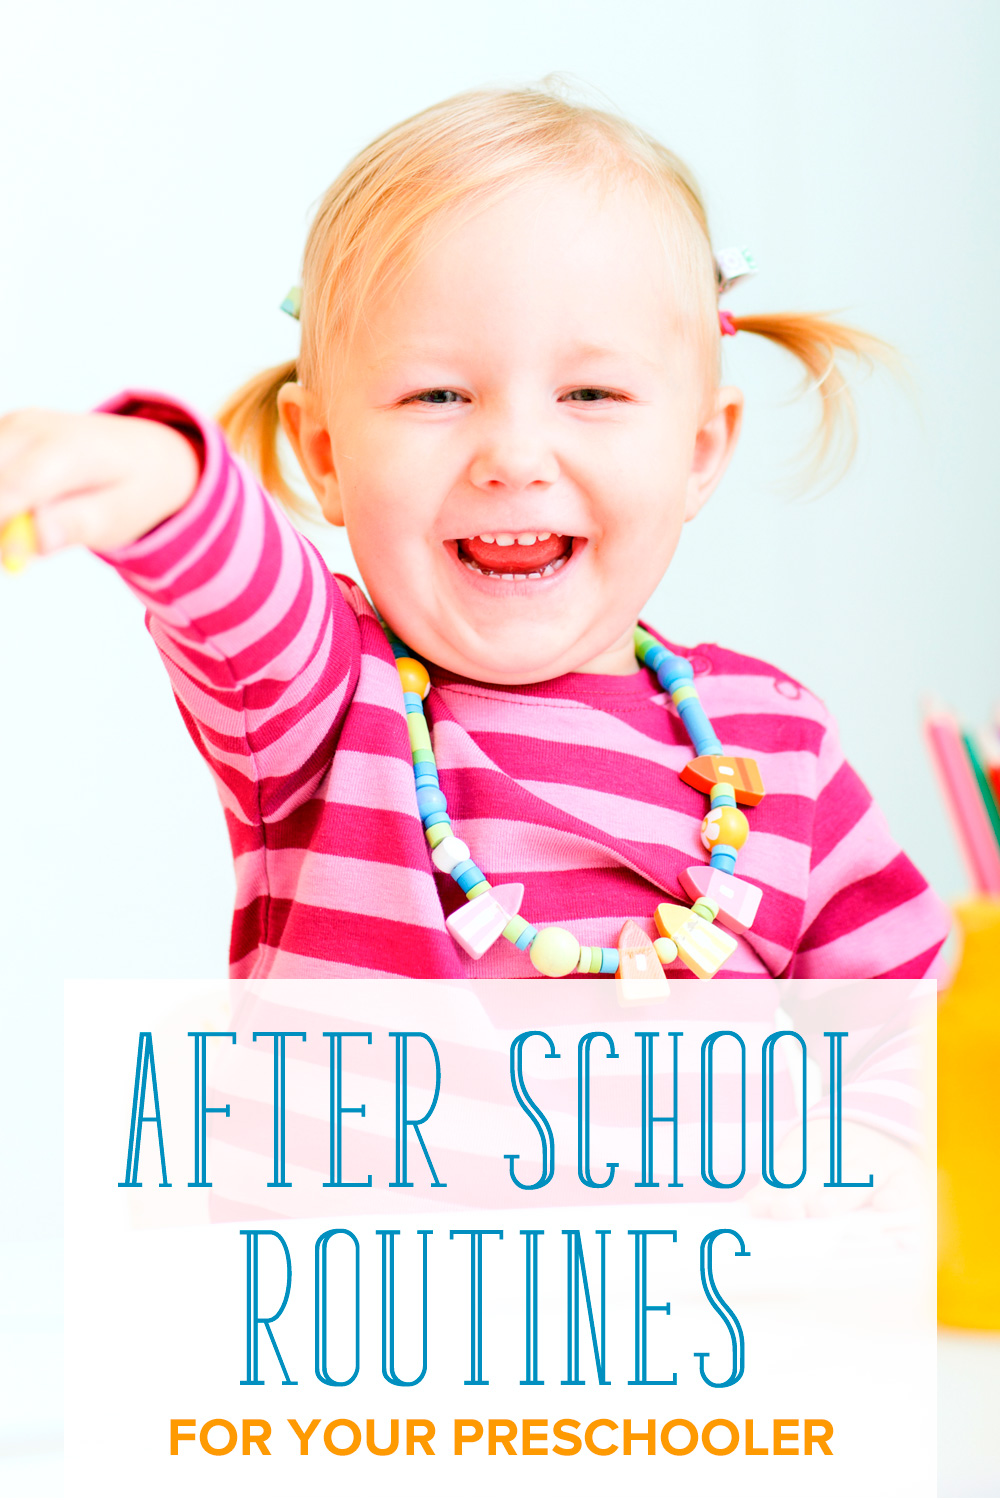 What to do after your child comes home from preschool? Here are some ideas on creating a good after school schedule for your preschooler.